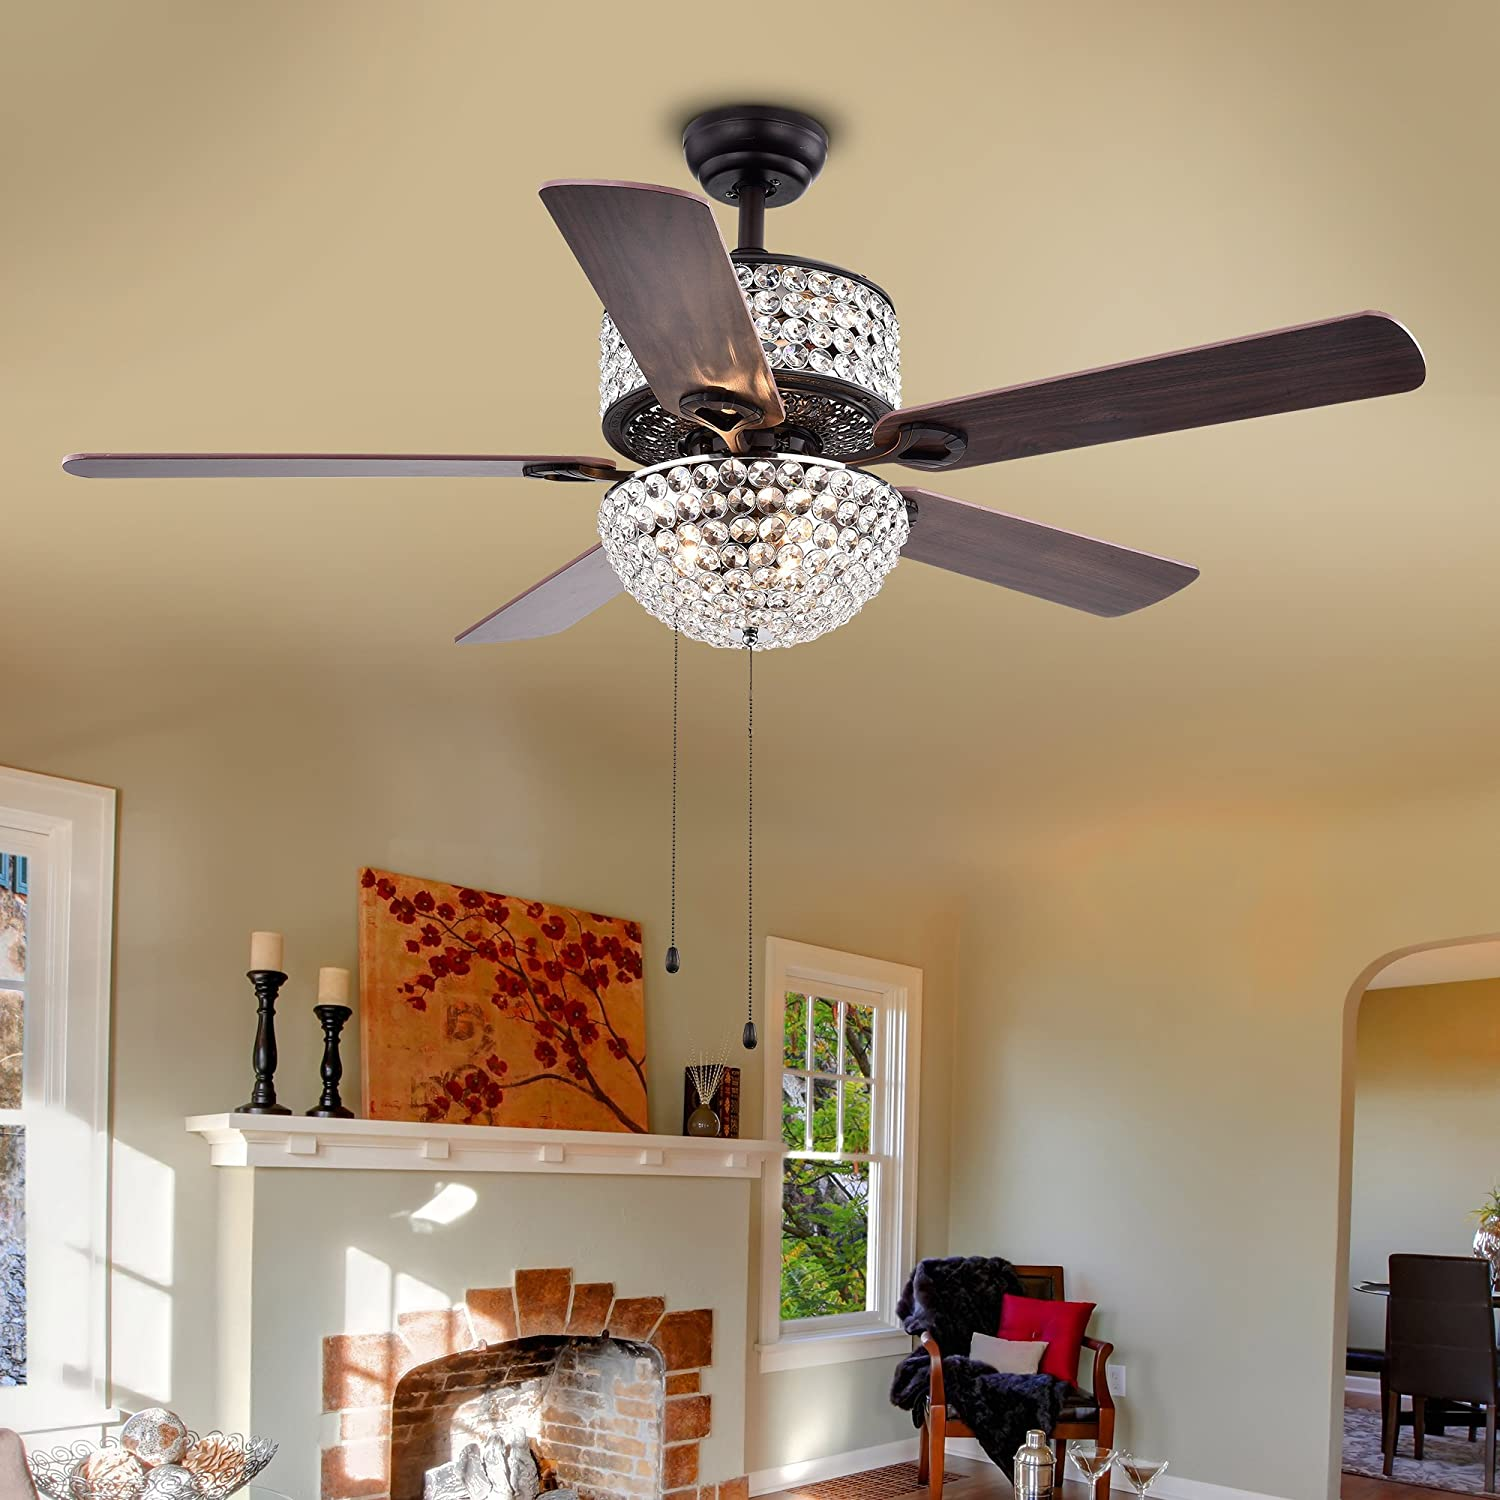 Warehouse of Tiffany CFL-8170BL Laure Crystal 6-Light 52-inch Ceiling Fan 52 W x 52 L x 20 H Multicolor